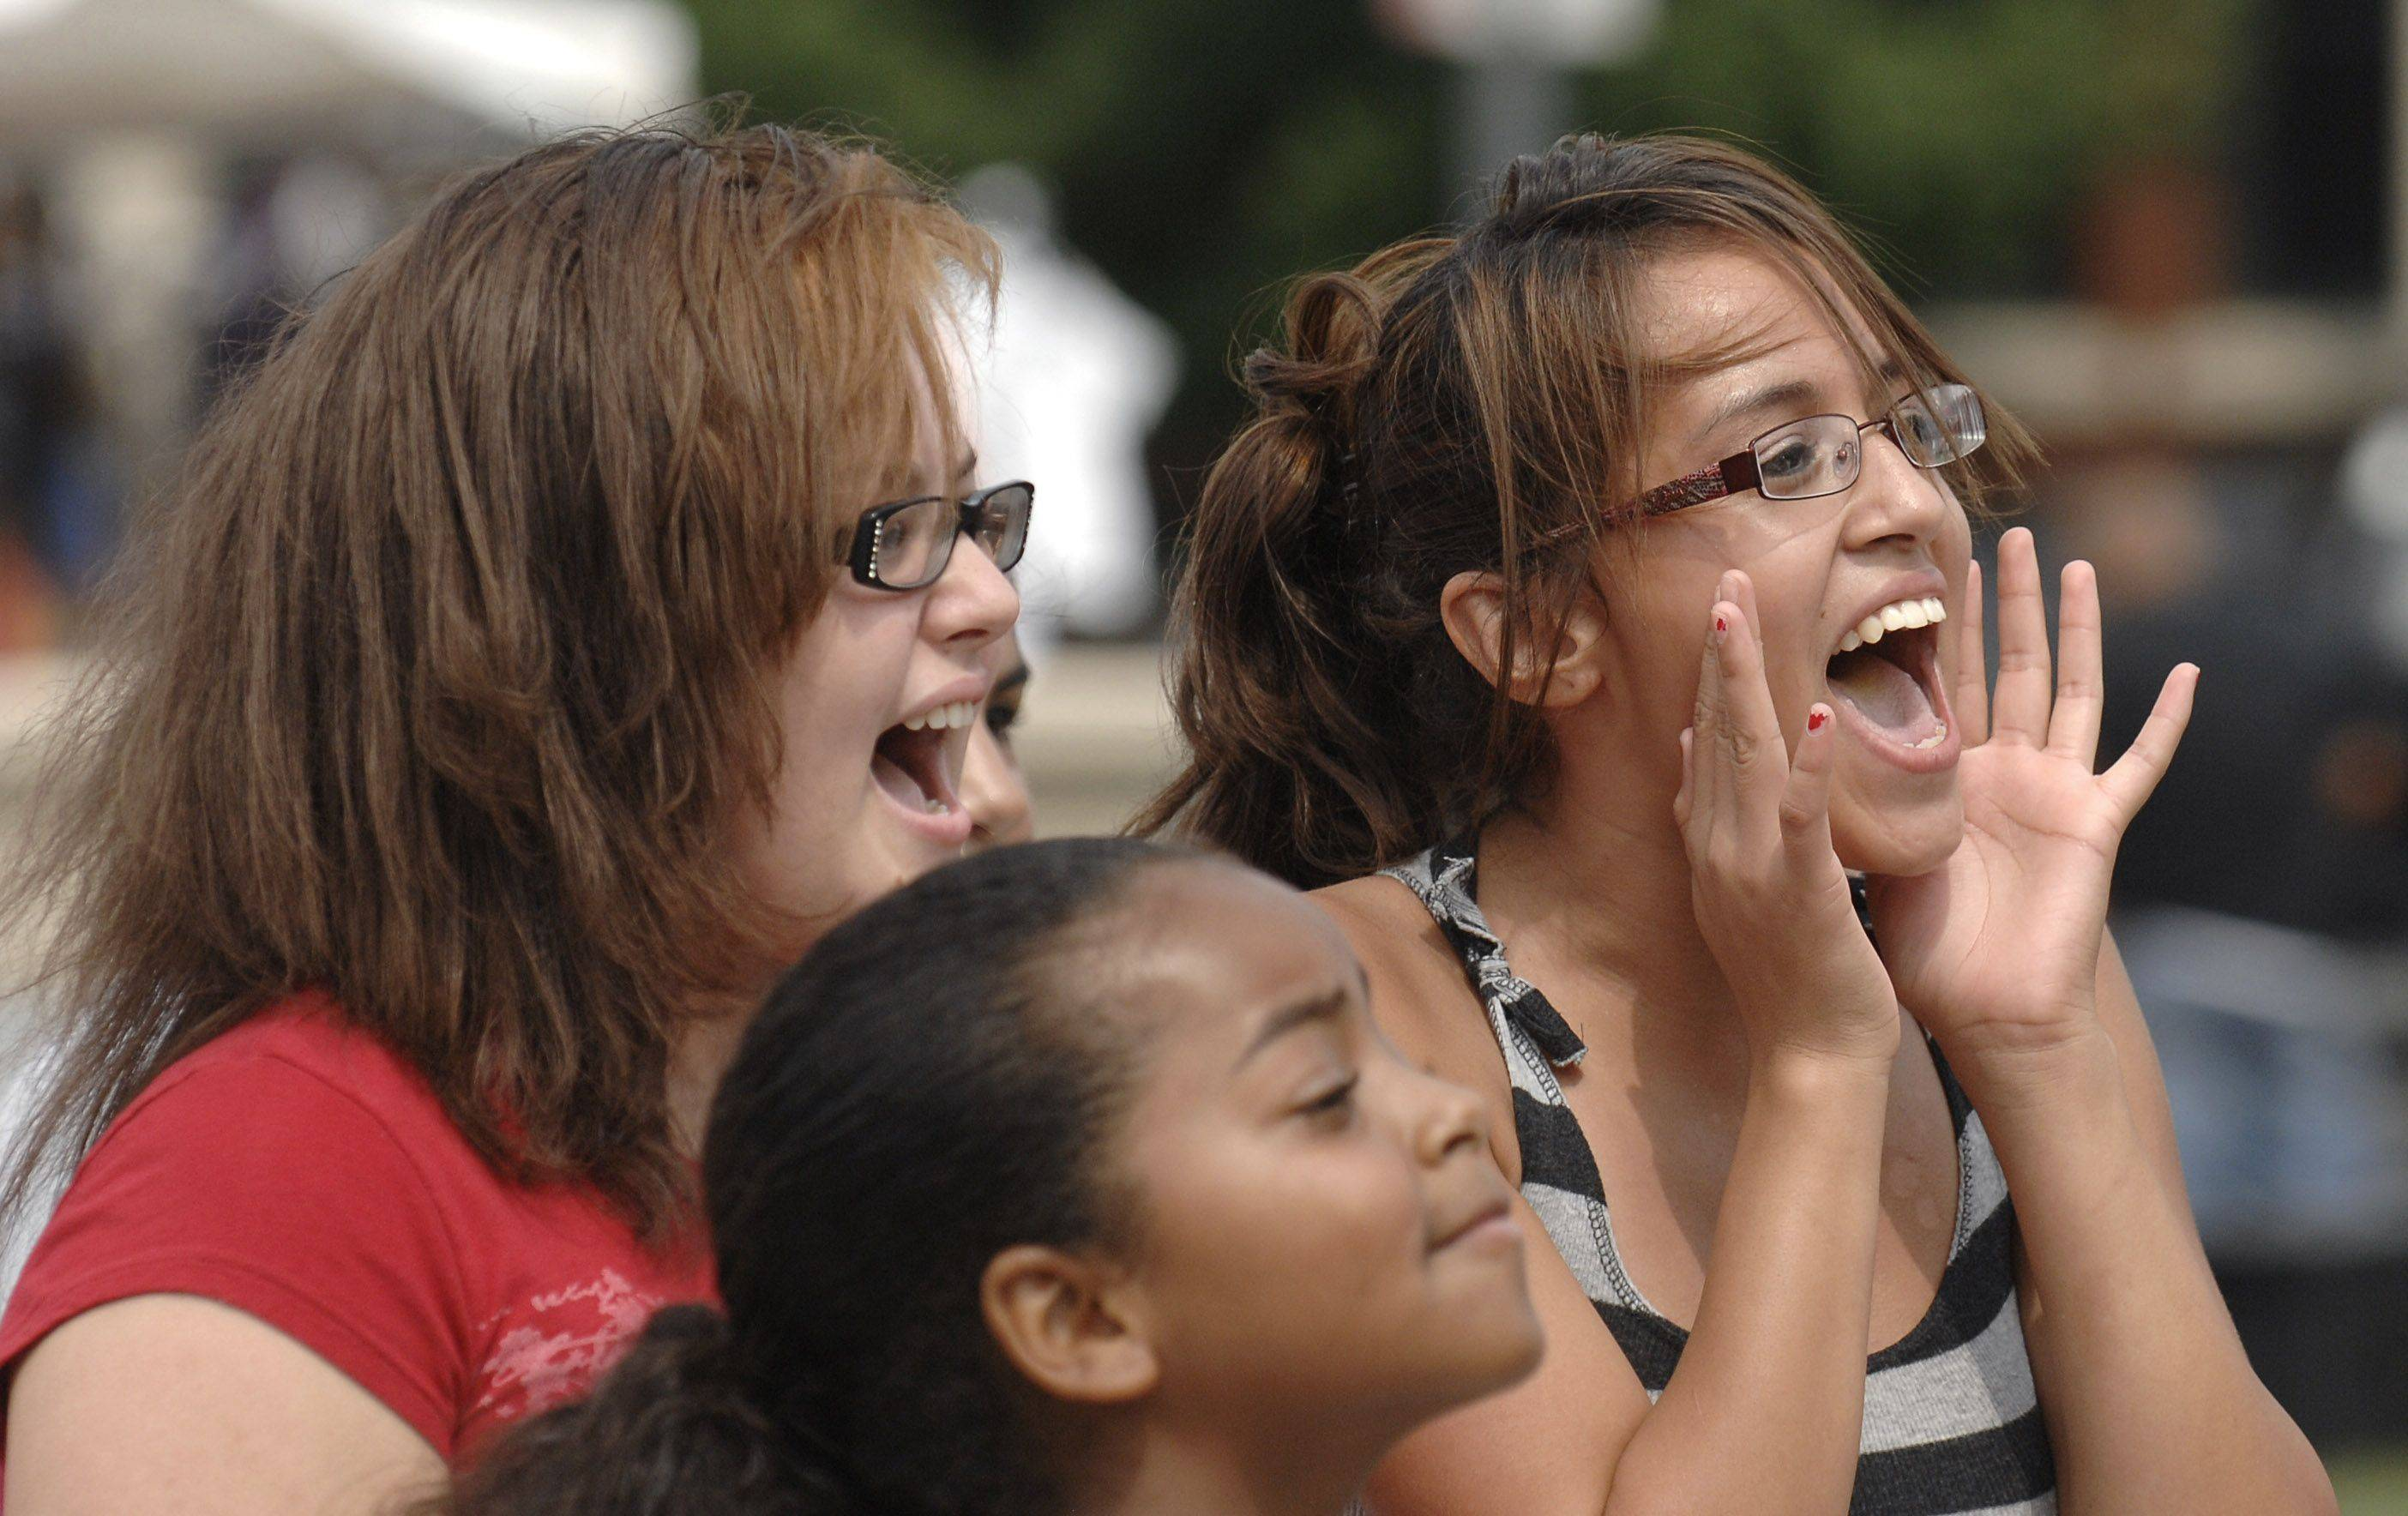 Mariyanna Santiago, left, and Aryana Cintora, both 14 and from Elgin, sing along as the Ragdoll Rock Band performs Saturday at Fiesta Salsa in Elgin.